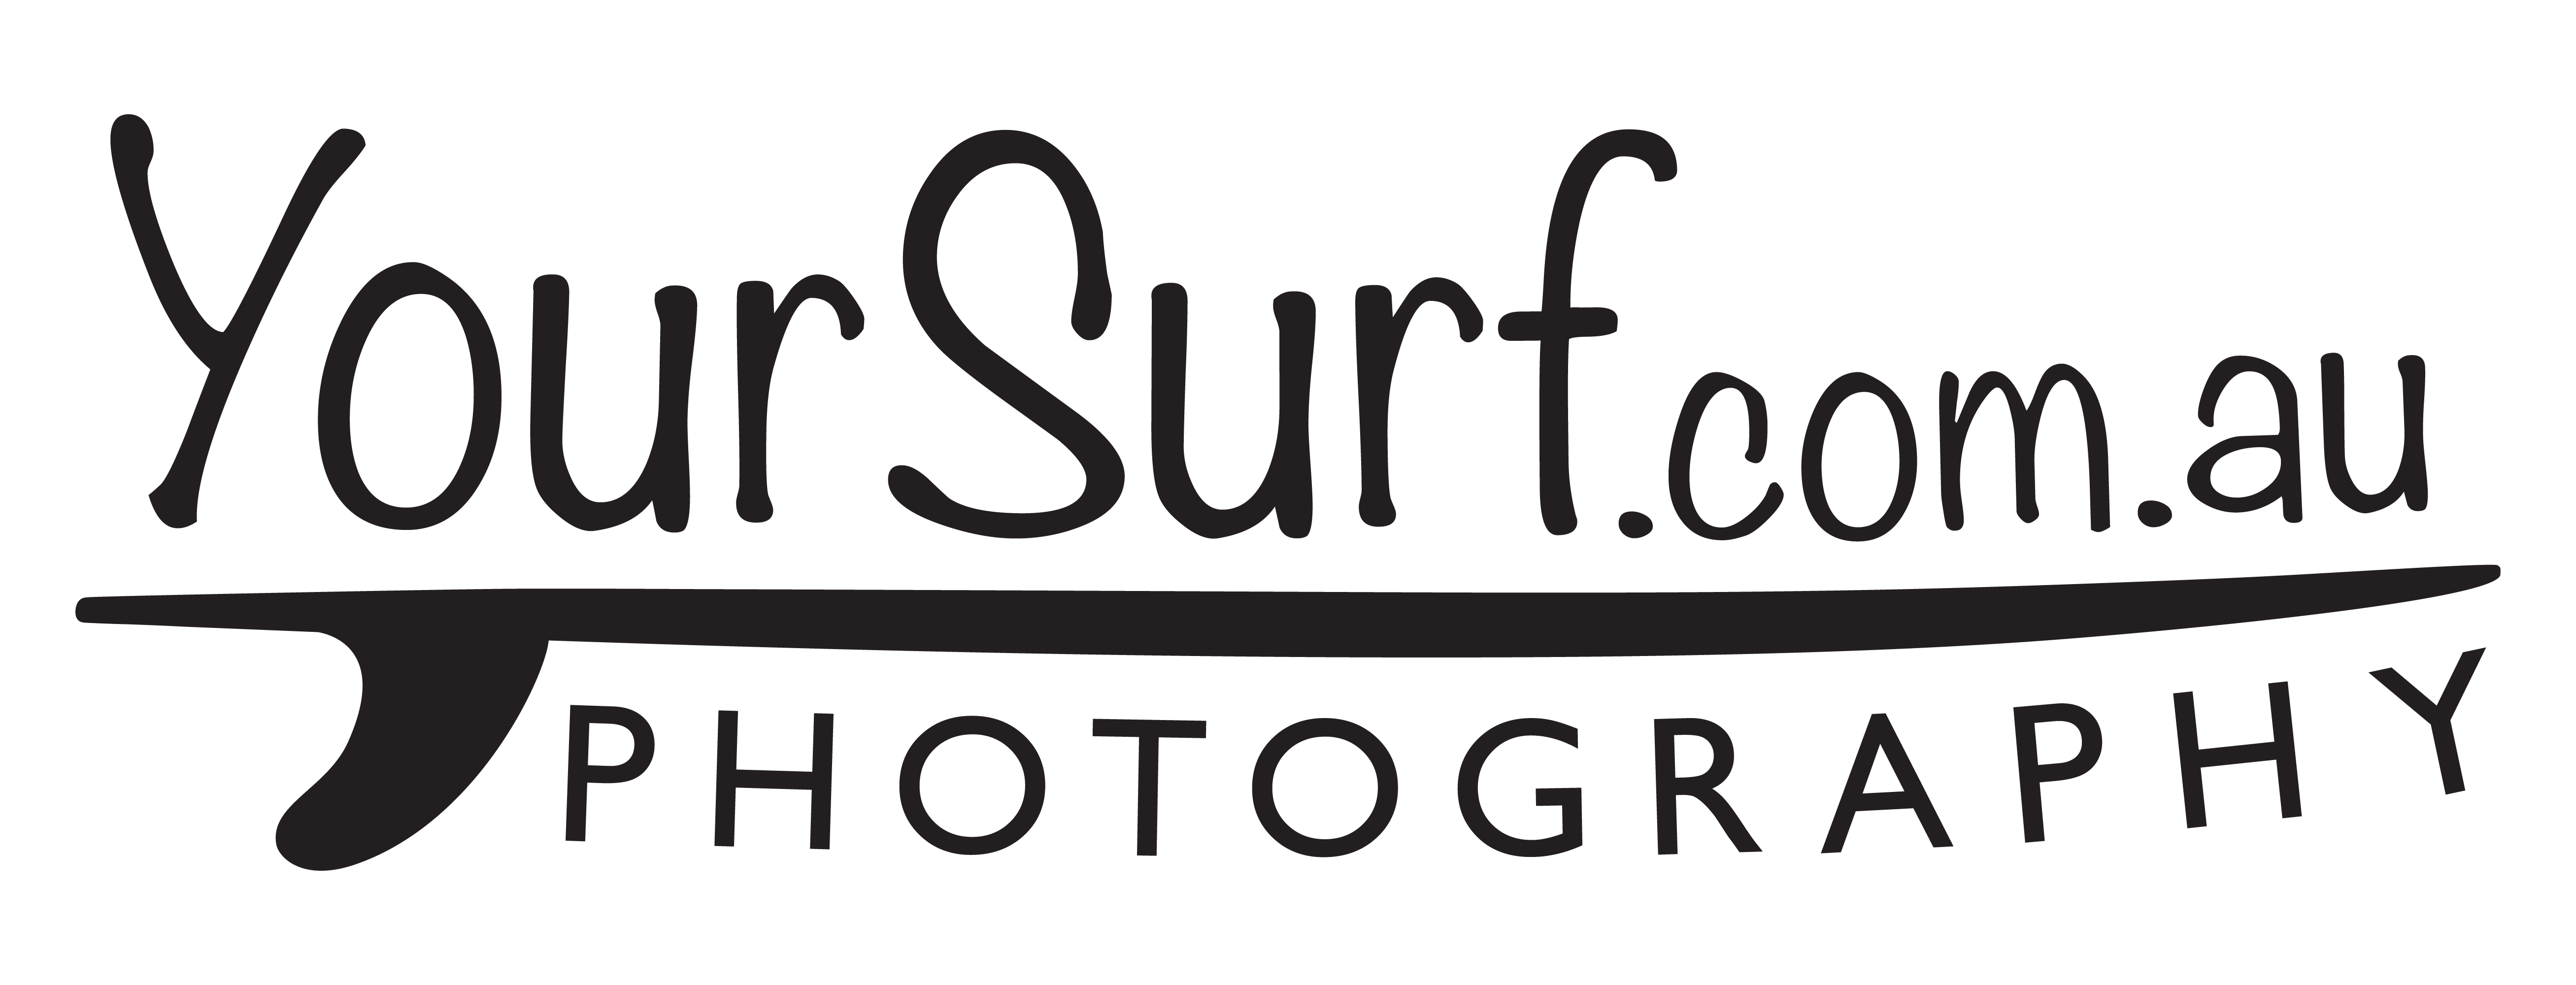 Your Surf